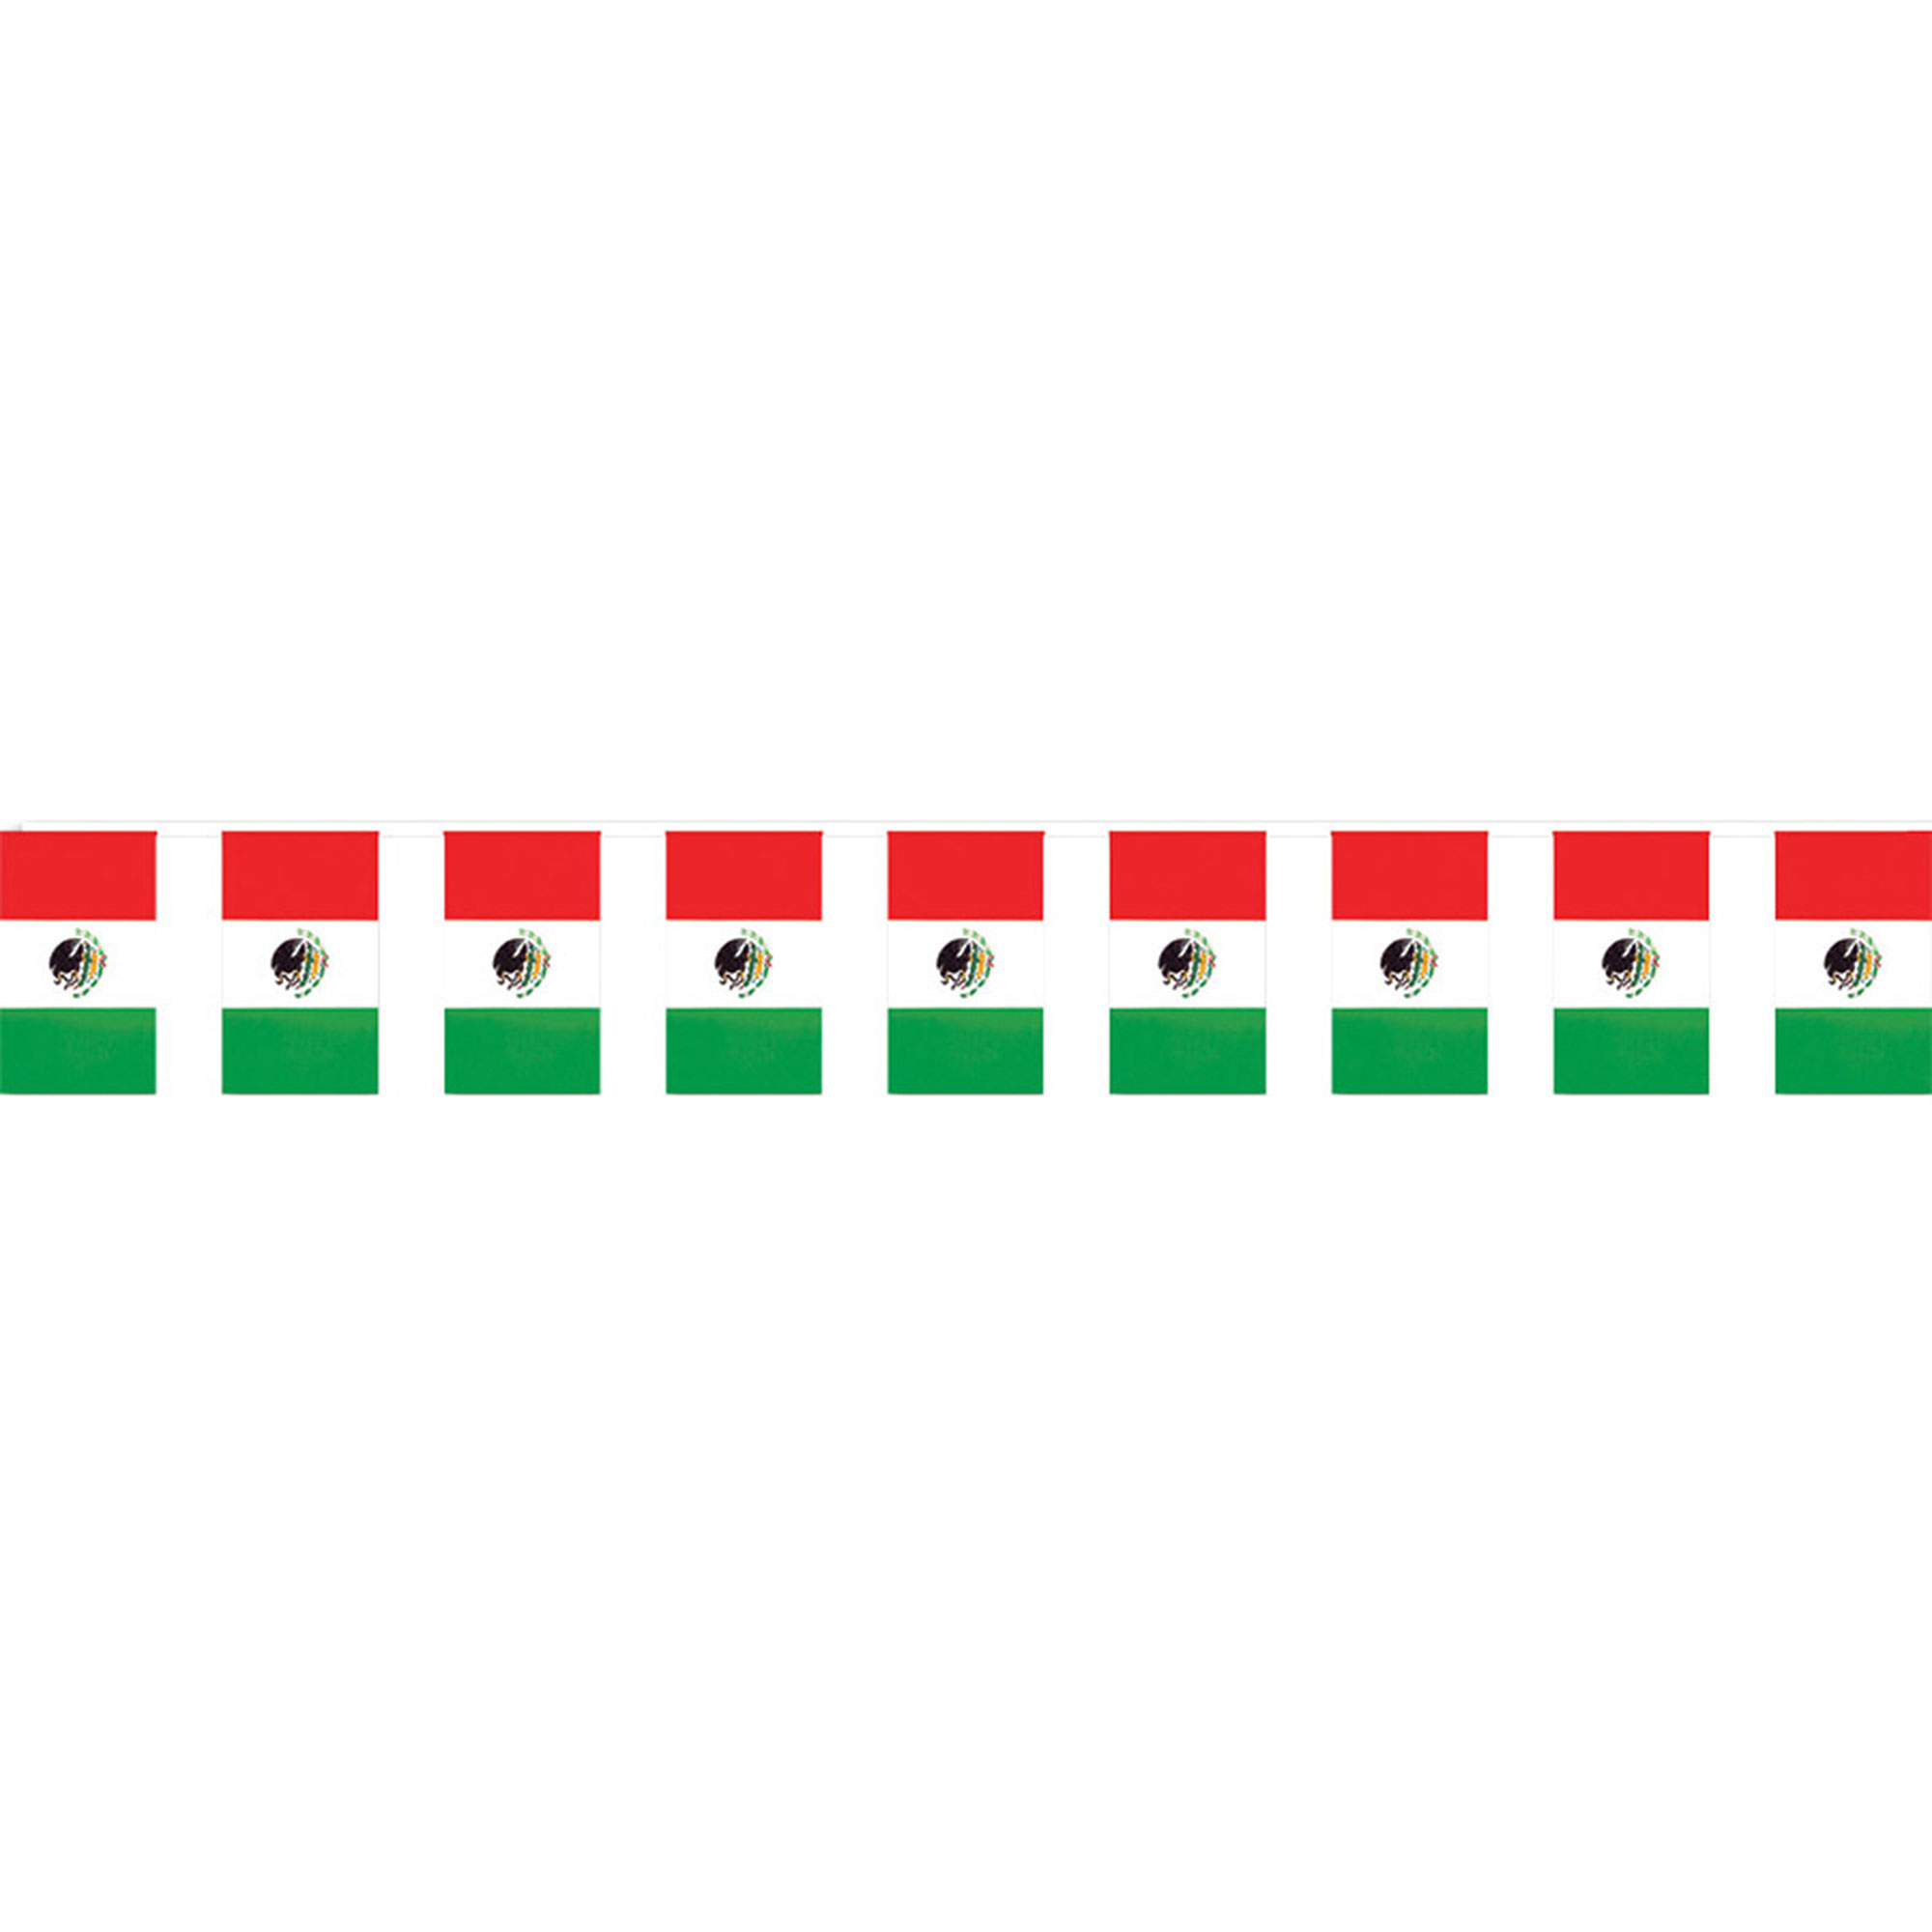 Morris Costumes Party Supplies Fiesta Outdoor Mexican Flag Banner, Style BG50711 by Morris Costumes